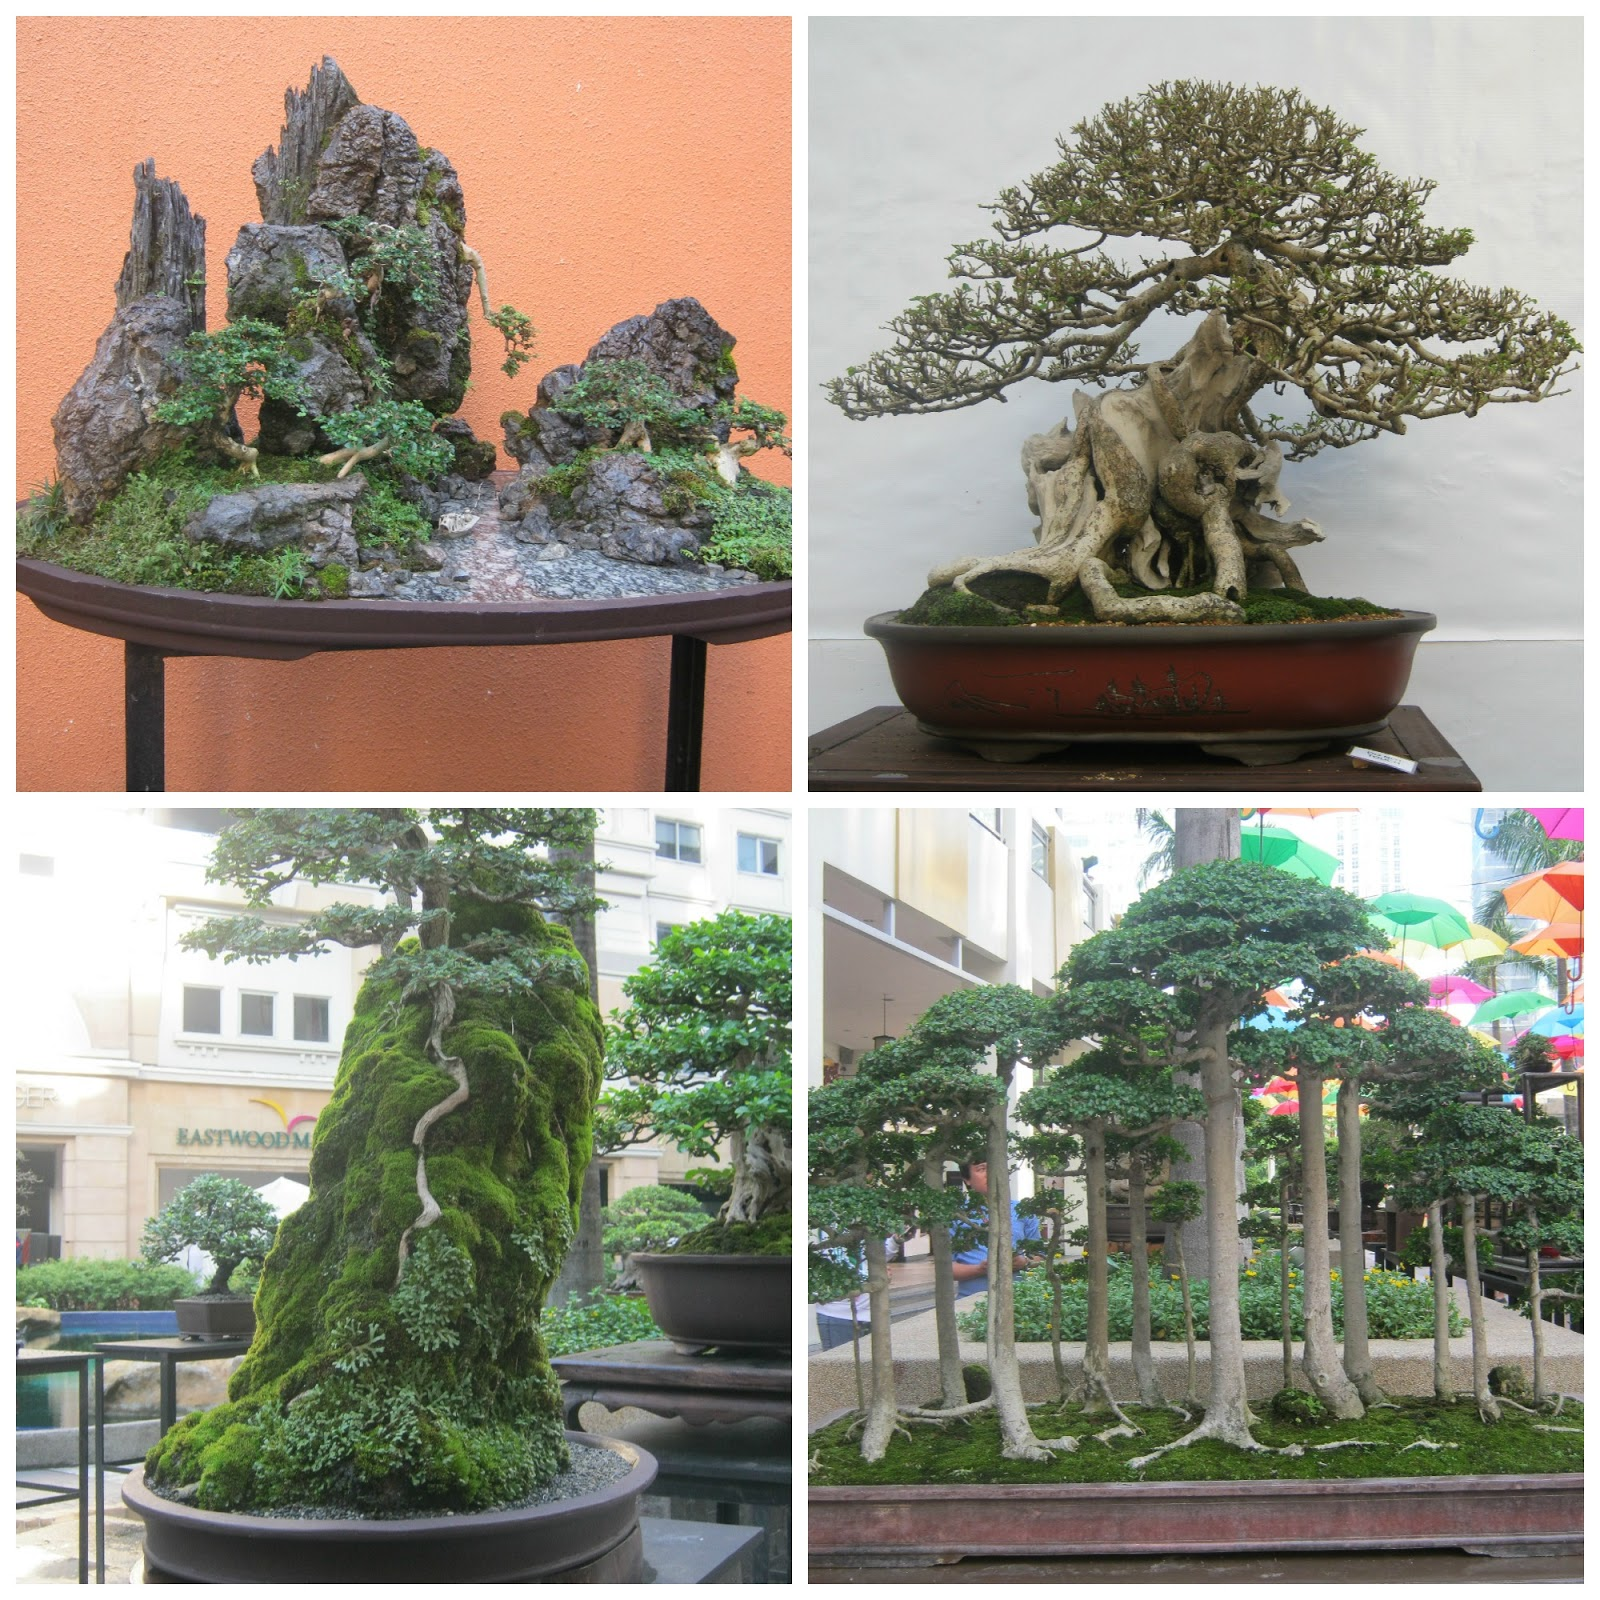 office bonsai. There Were About 200 Bonsai Plants On Exhibit. I Just Picked A Few But Trust Me, The Exhibit Itself Was Sight To Behold. Office